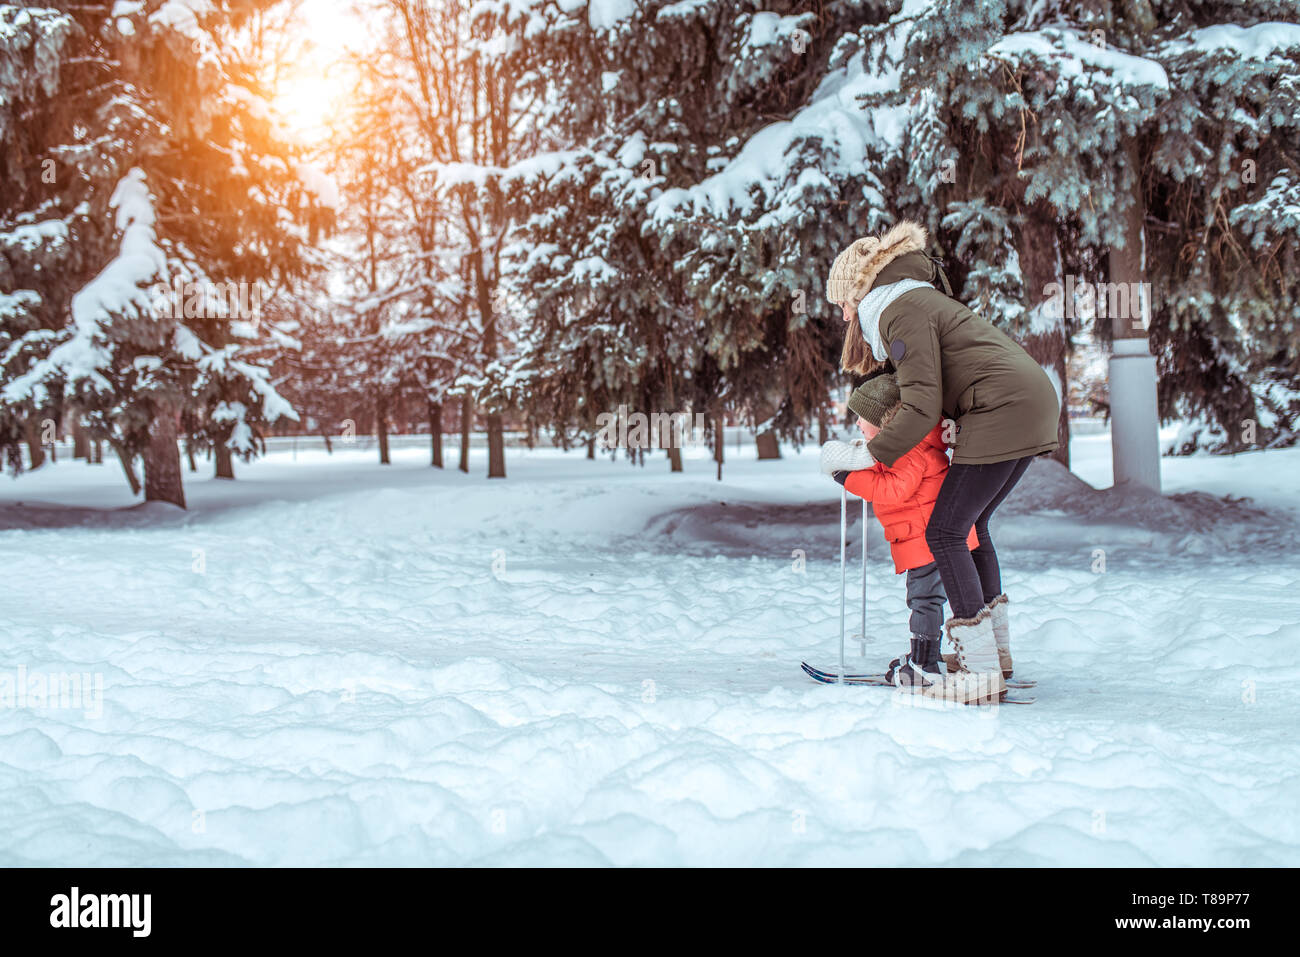 A young mother supports a young son, a boy of 3 years. In winter, outside in park, background is snow drifts of Christmas tree. Free space. Children's Stock Photo